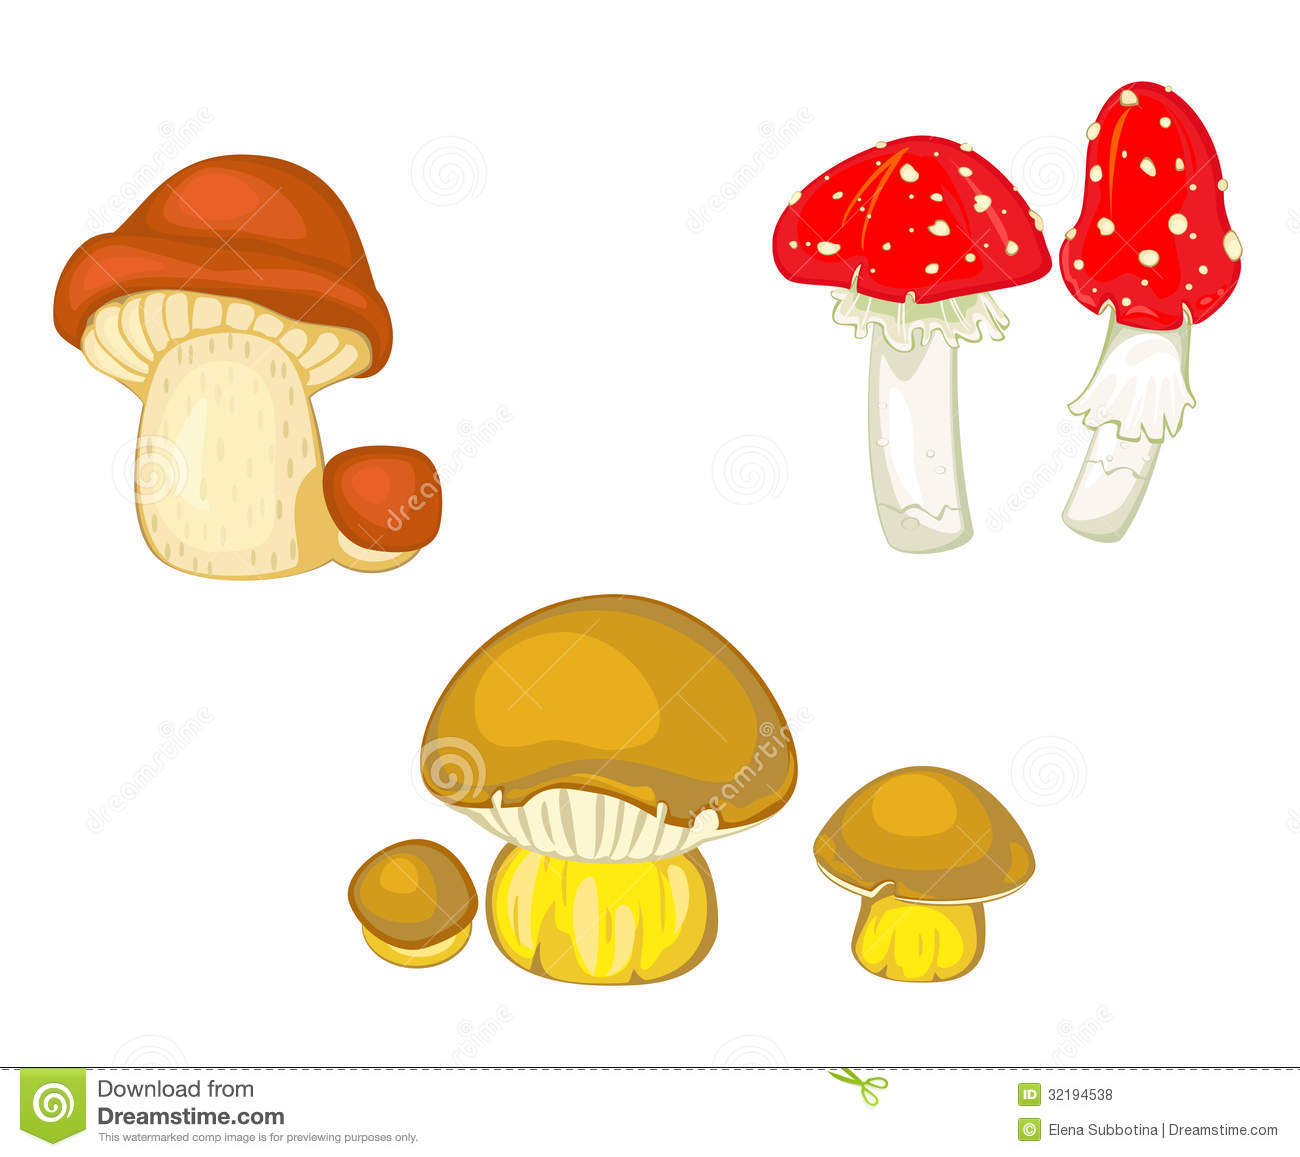 Mushrooms And Toadstools Royalty Free Stock Photos.